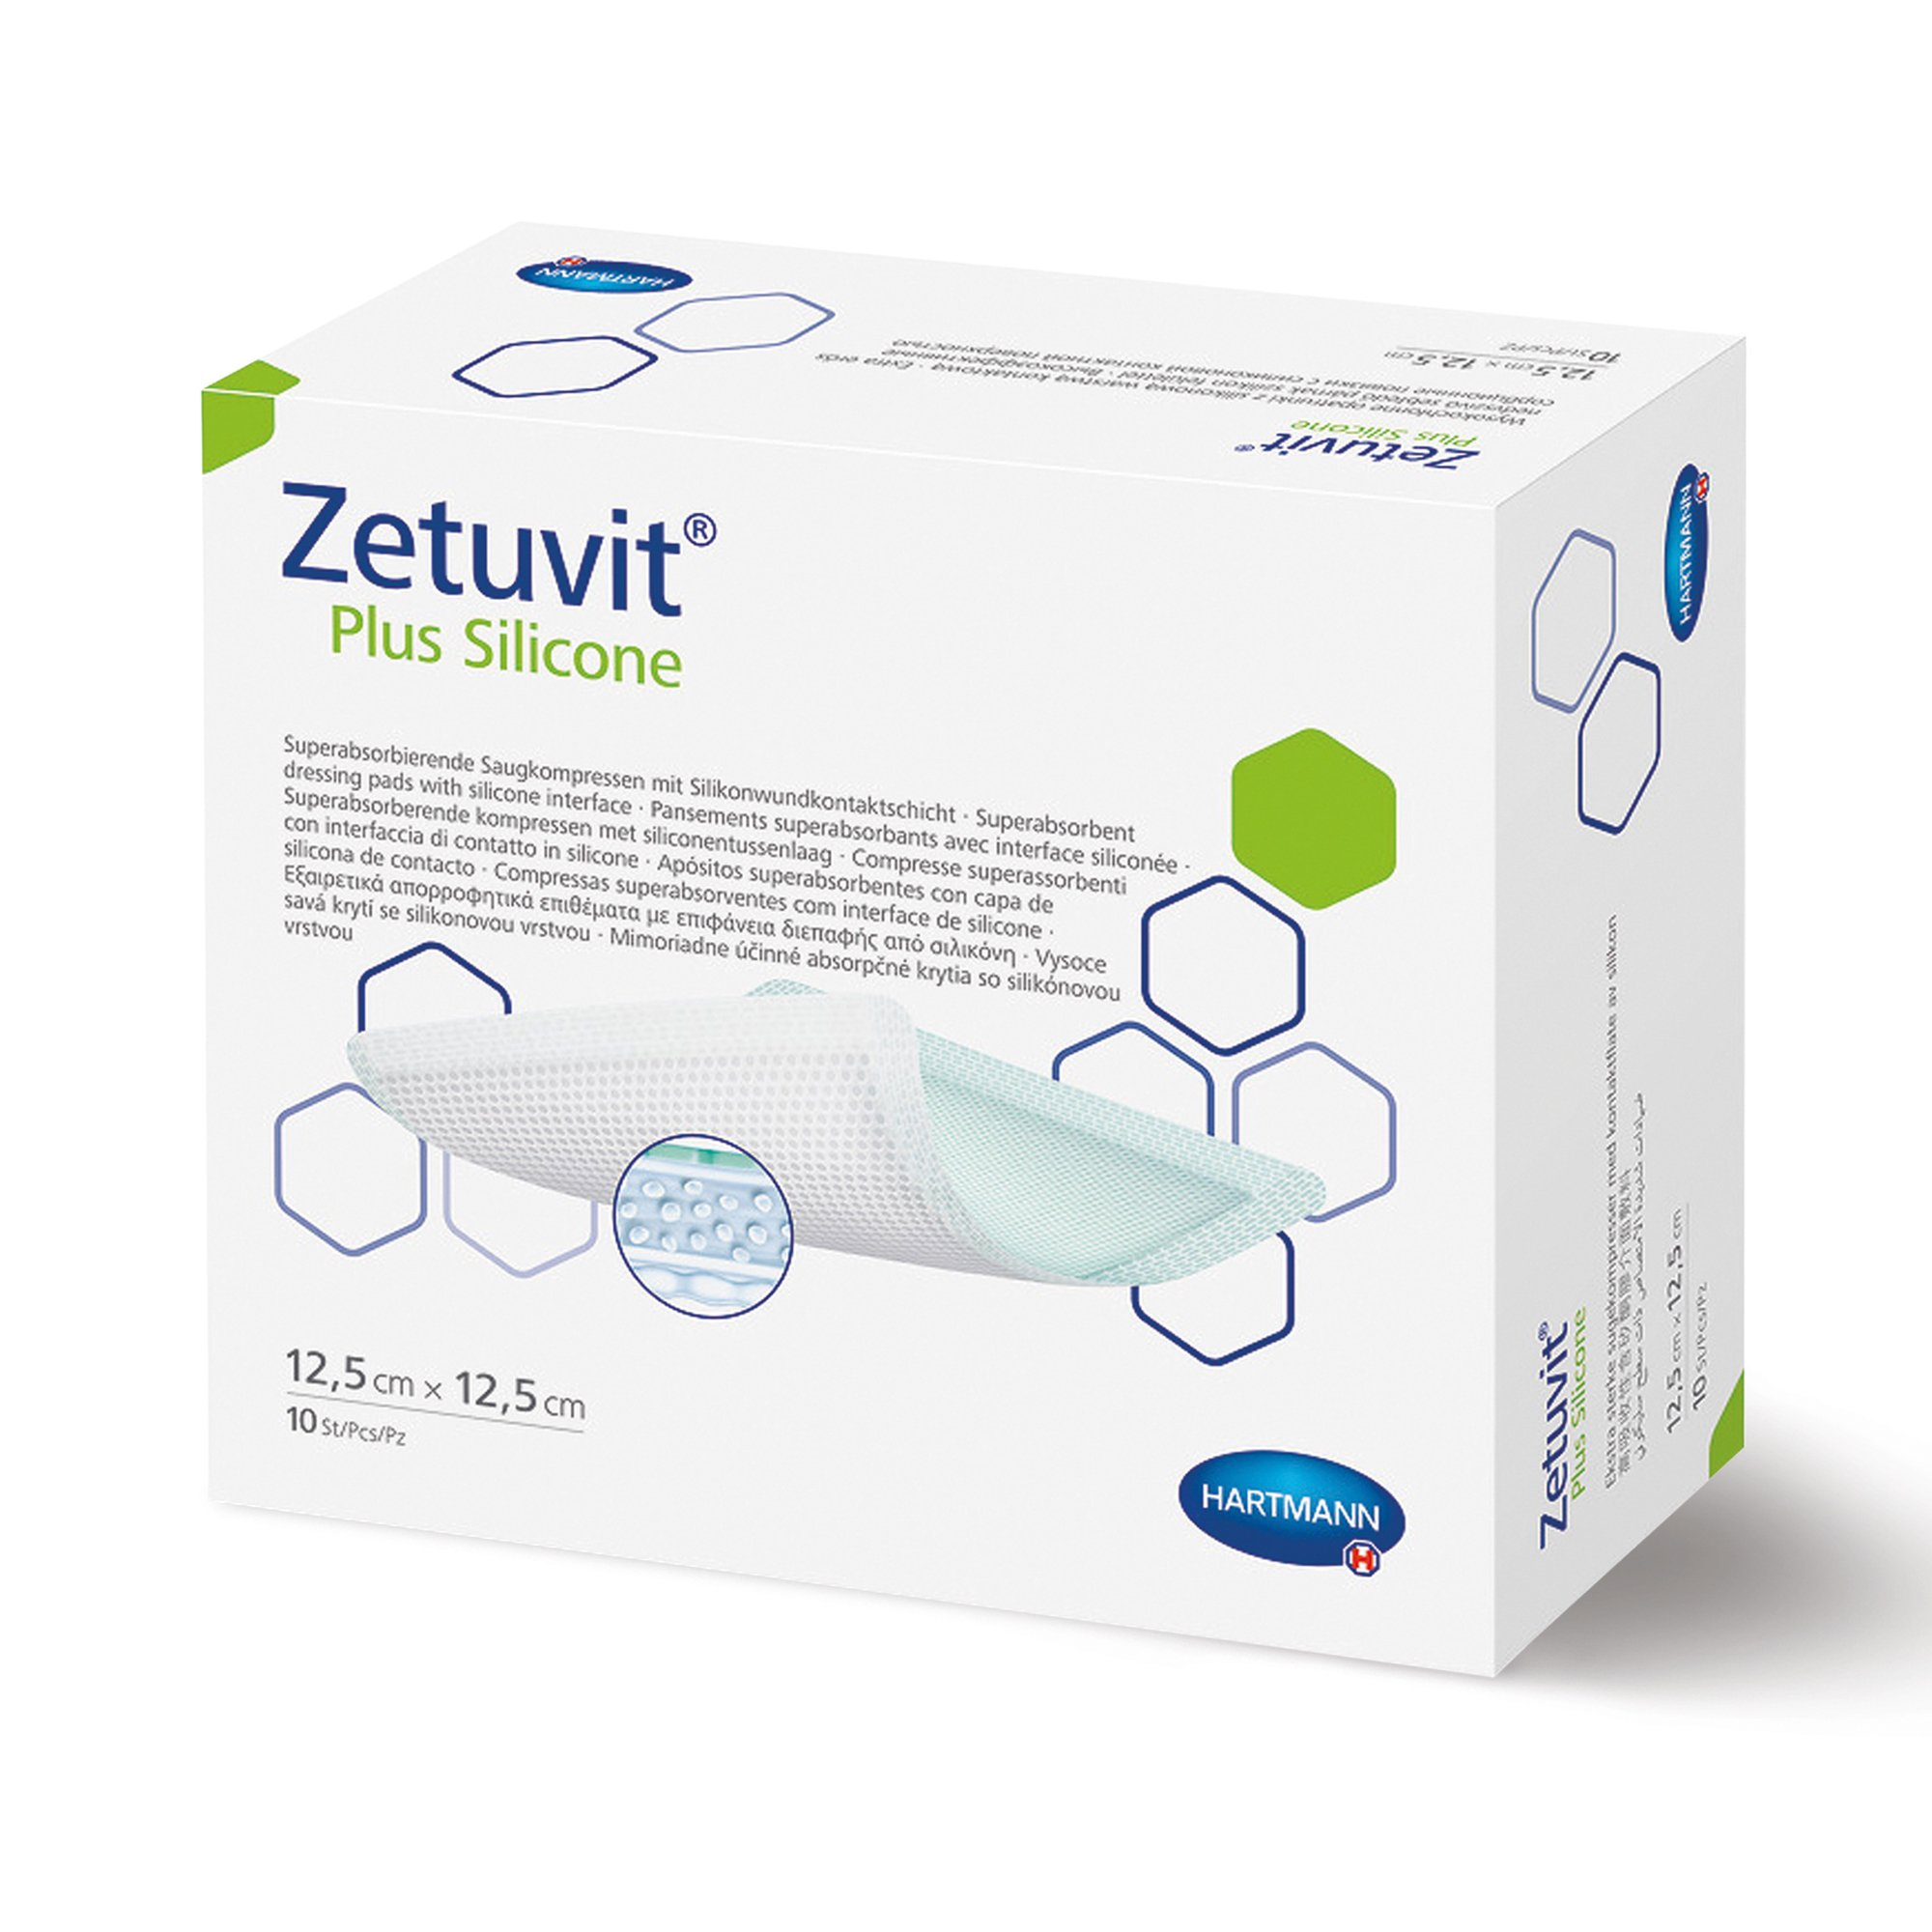 """Zetuvit Plus Silicone Super Absorbent Dressing, 3 X 3"""", 413114, Box of 10"""